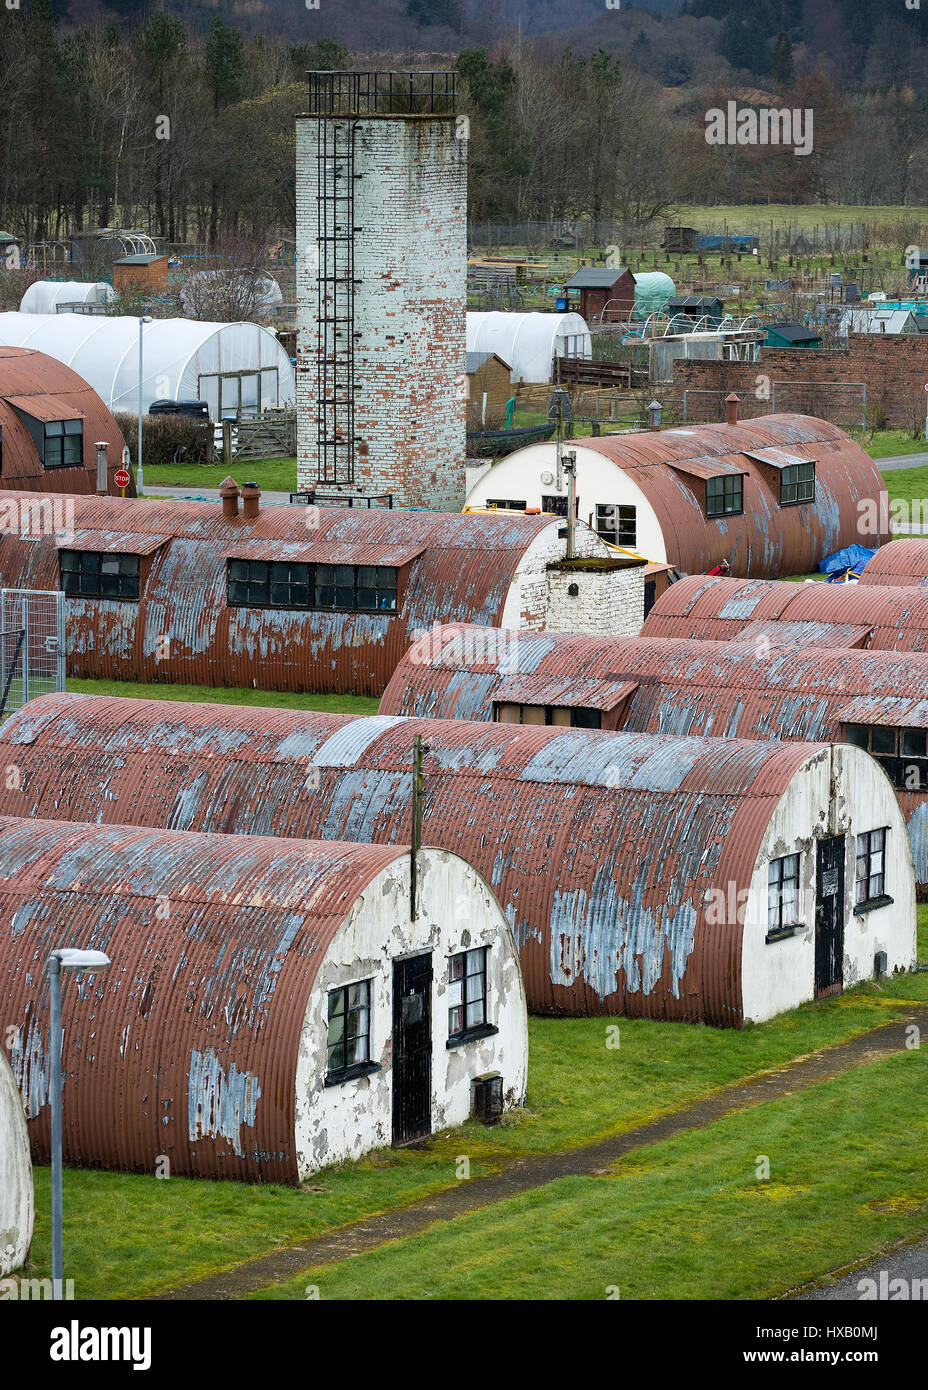 Named PoW camp No 21, built in 1941 to house 4,000 Category A prisoners, Cultybraggan was a 'black camp', - Stock Image